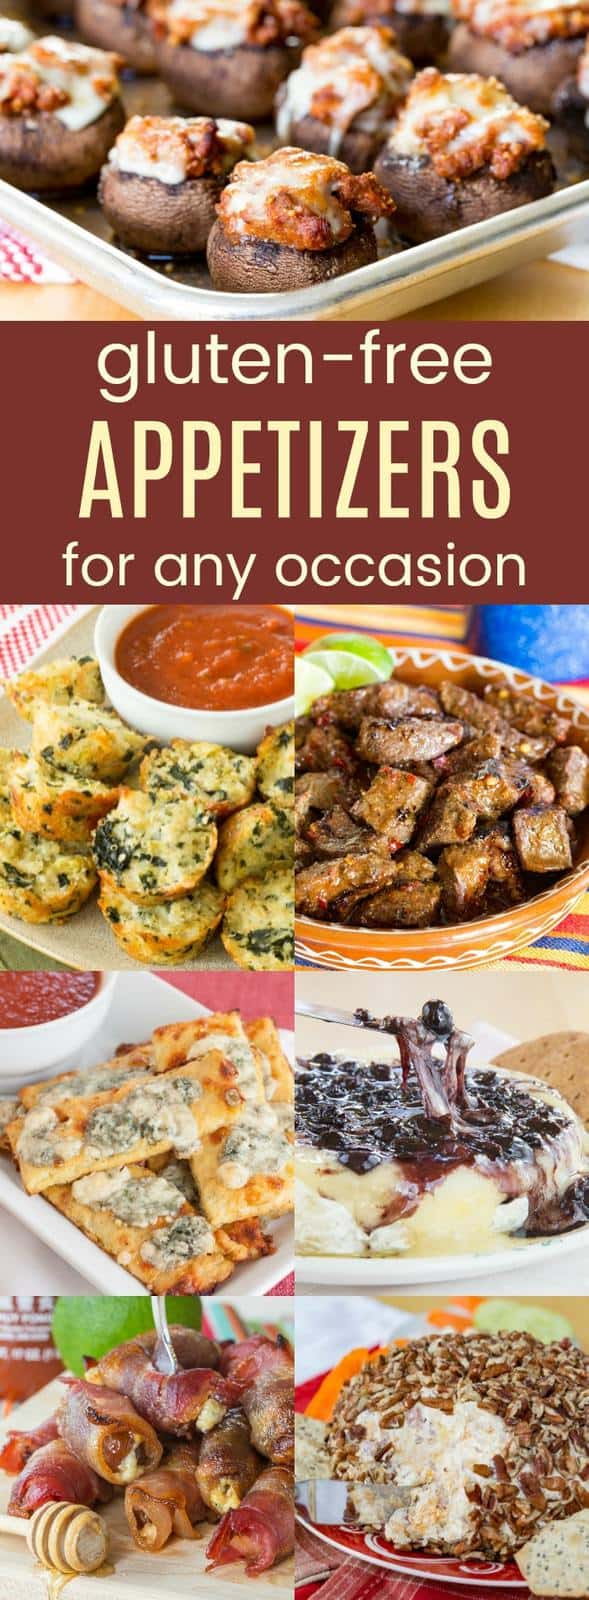 Recipes for Gluten Free Appetizers